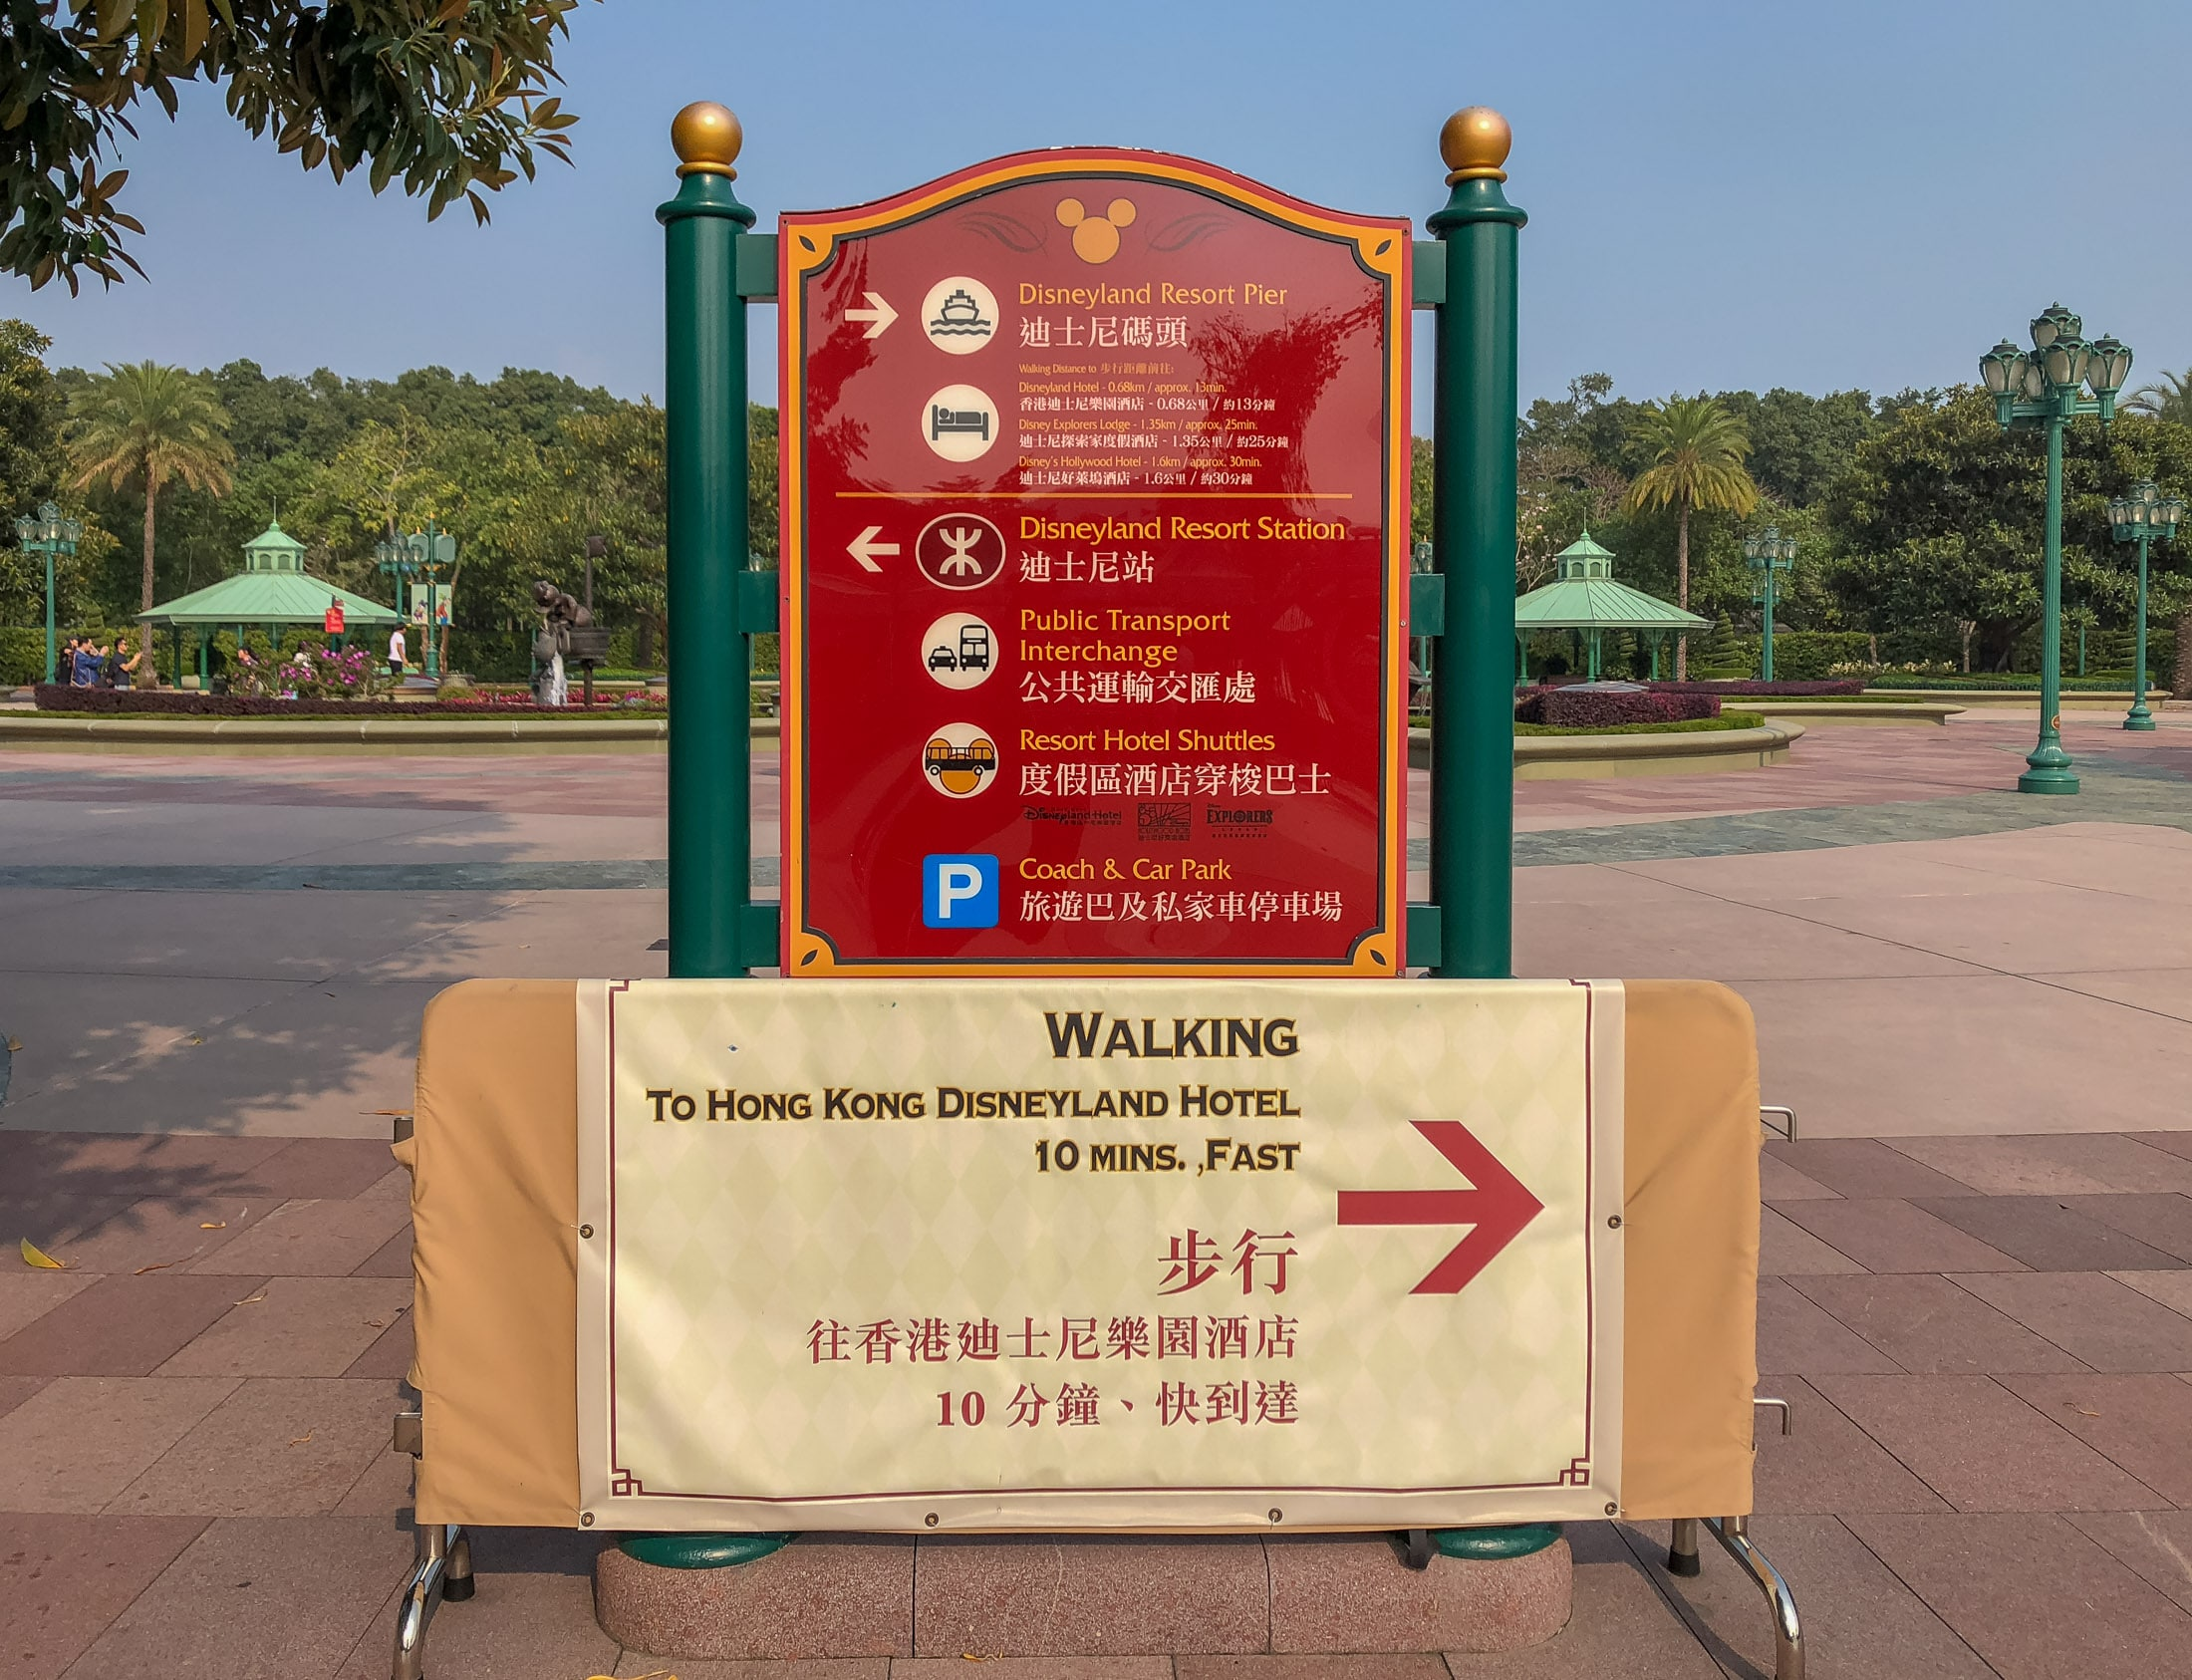 Distance to Hong Kong Disneyland from the hotels.